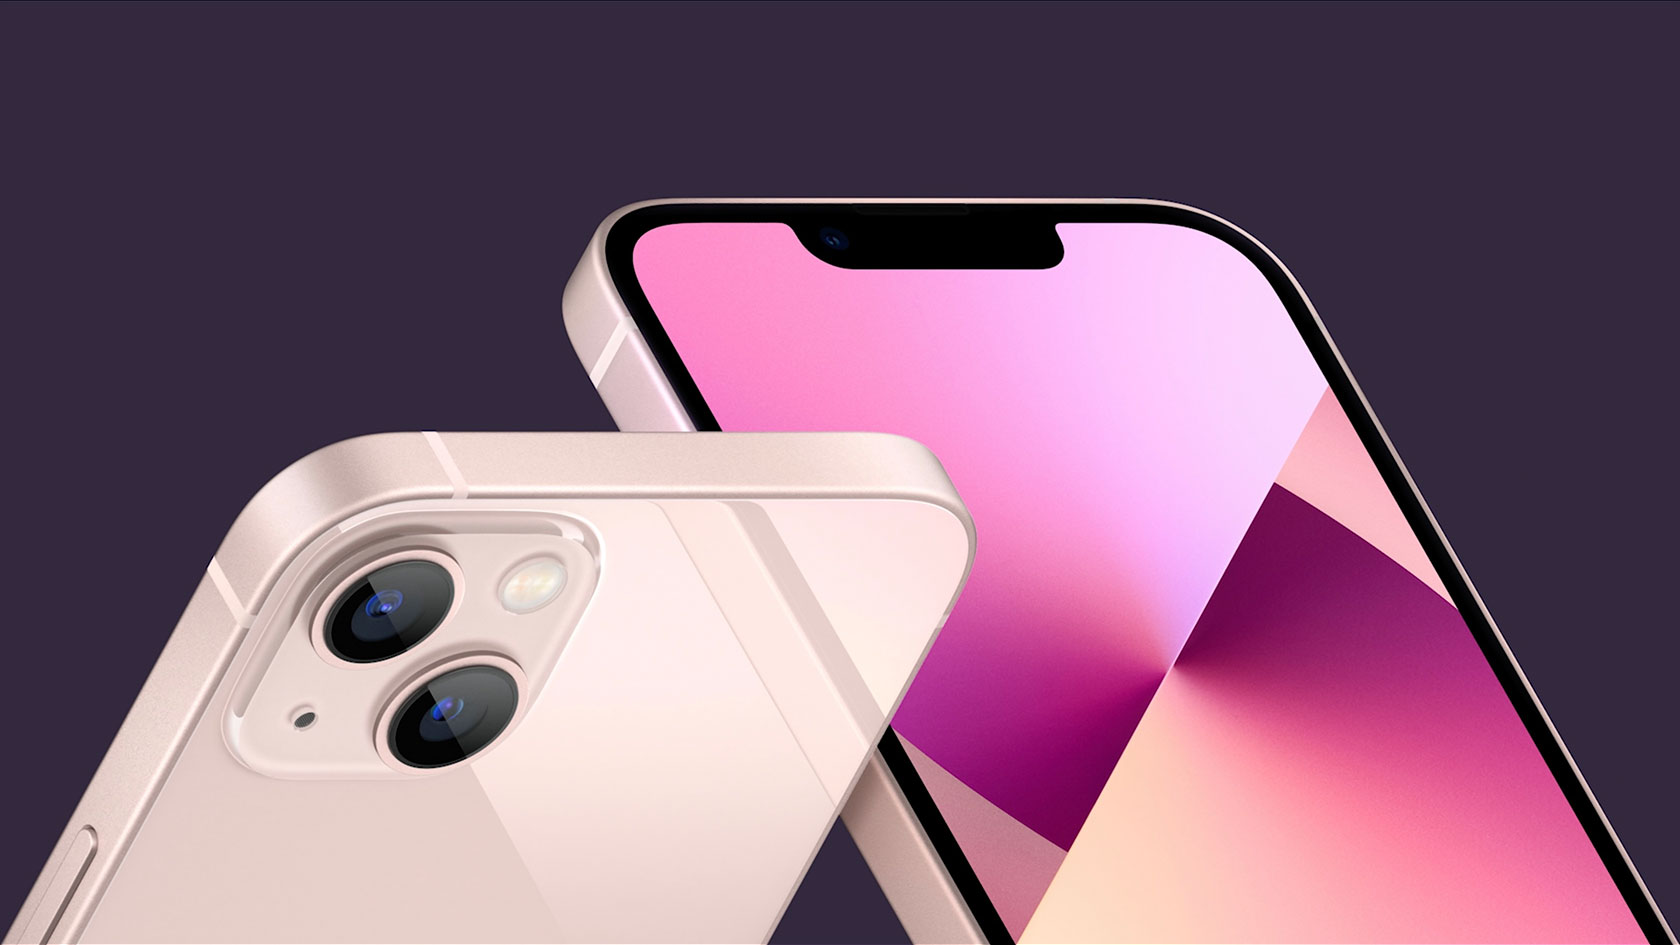 iPhone 13 series: Is it in the race?